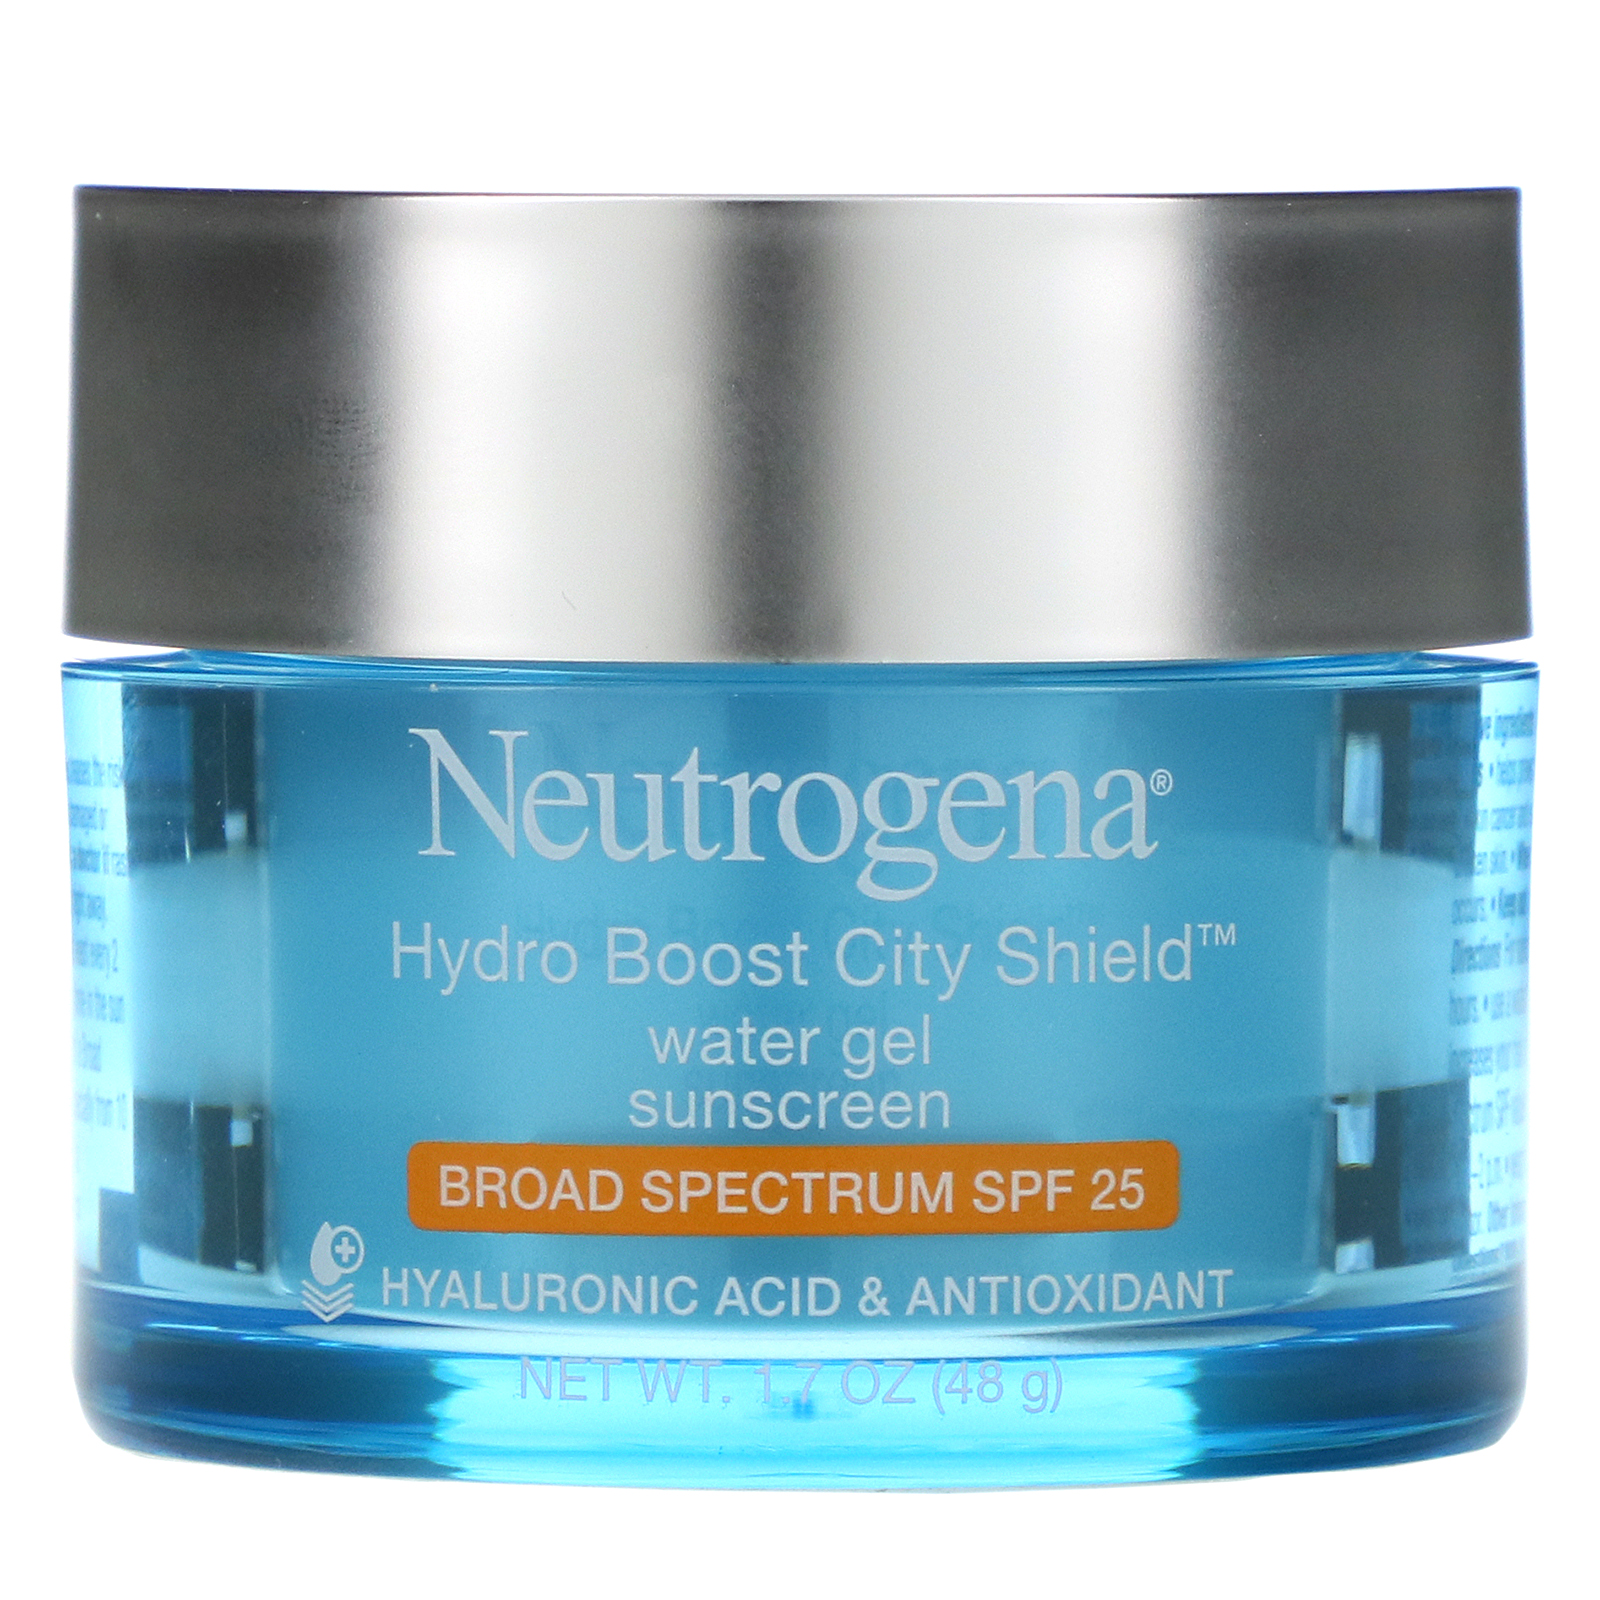 Neutrogena, Hydro Boost City Shield, Water Gel Sunscreen, SPF 25, 1.7 oz (48 g)